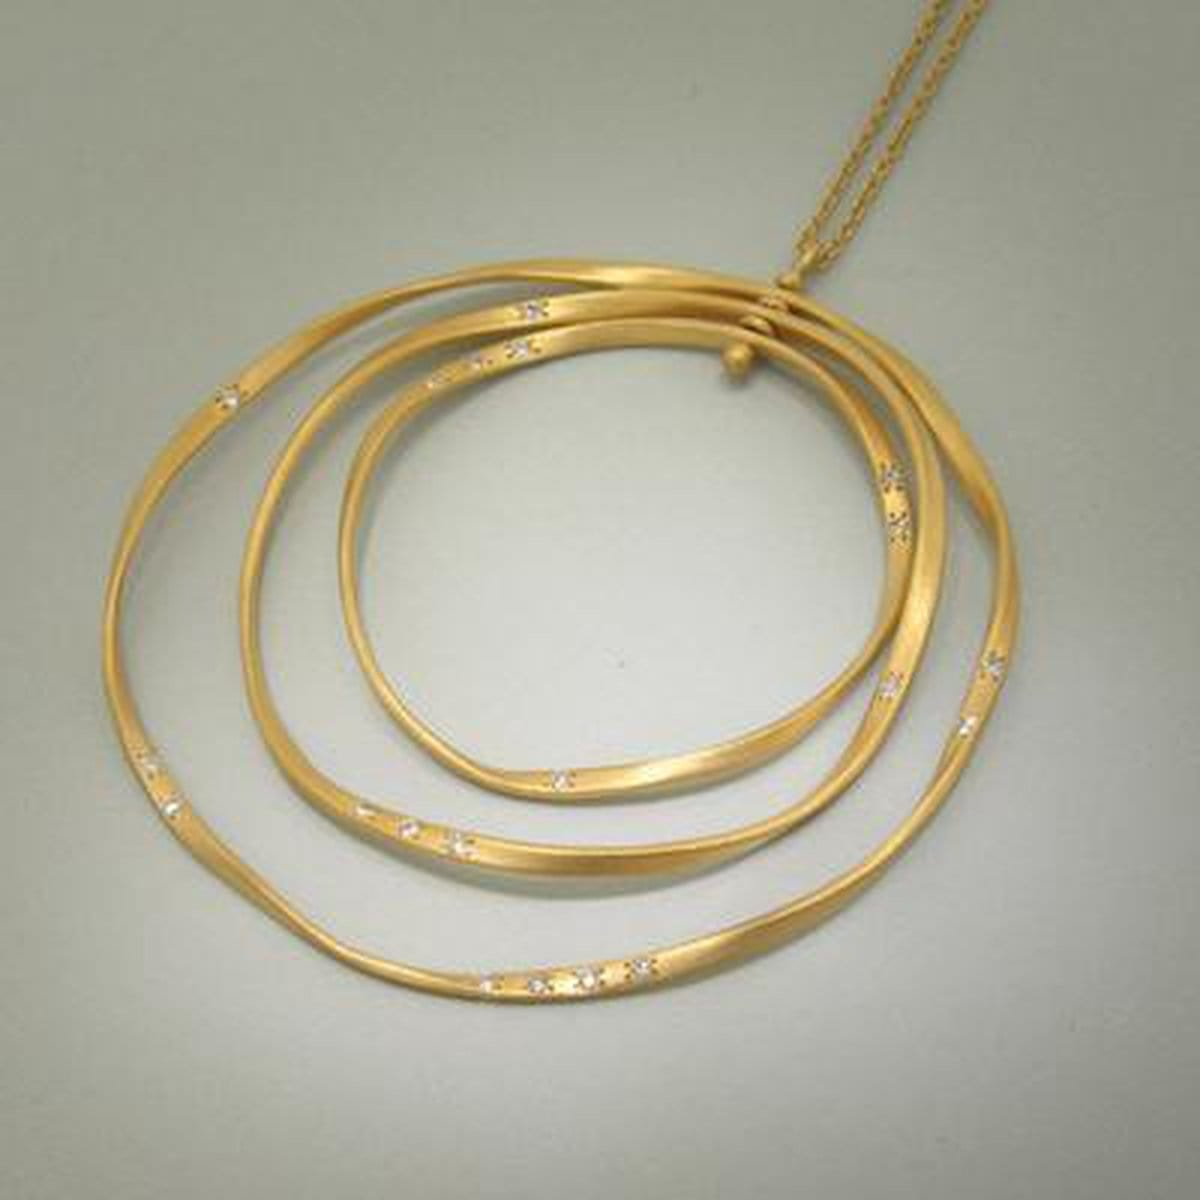 Marika Diamond & 14k Gold Necklace - M2536-Marika-Renee Taylor Gallery